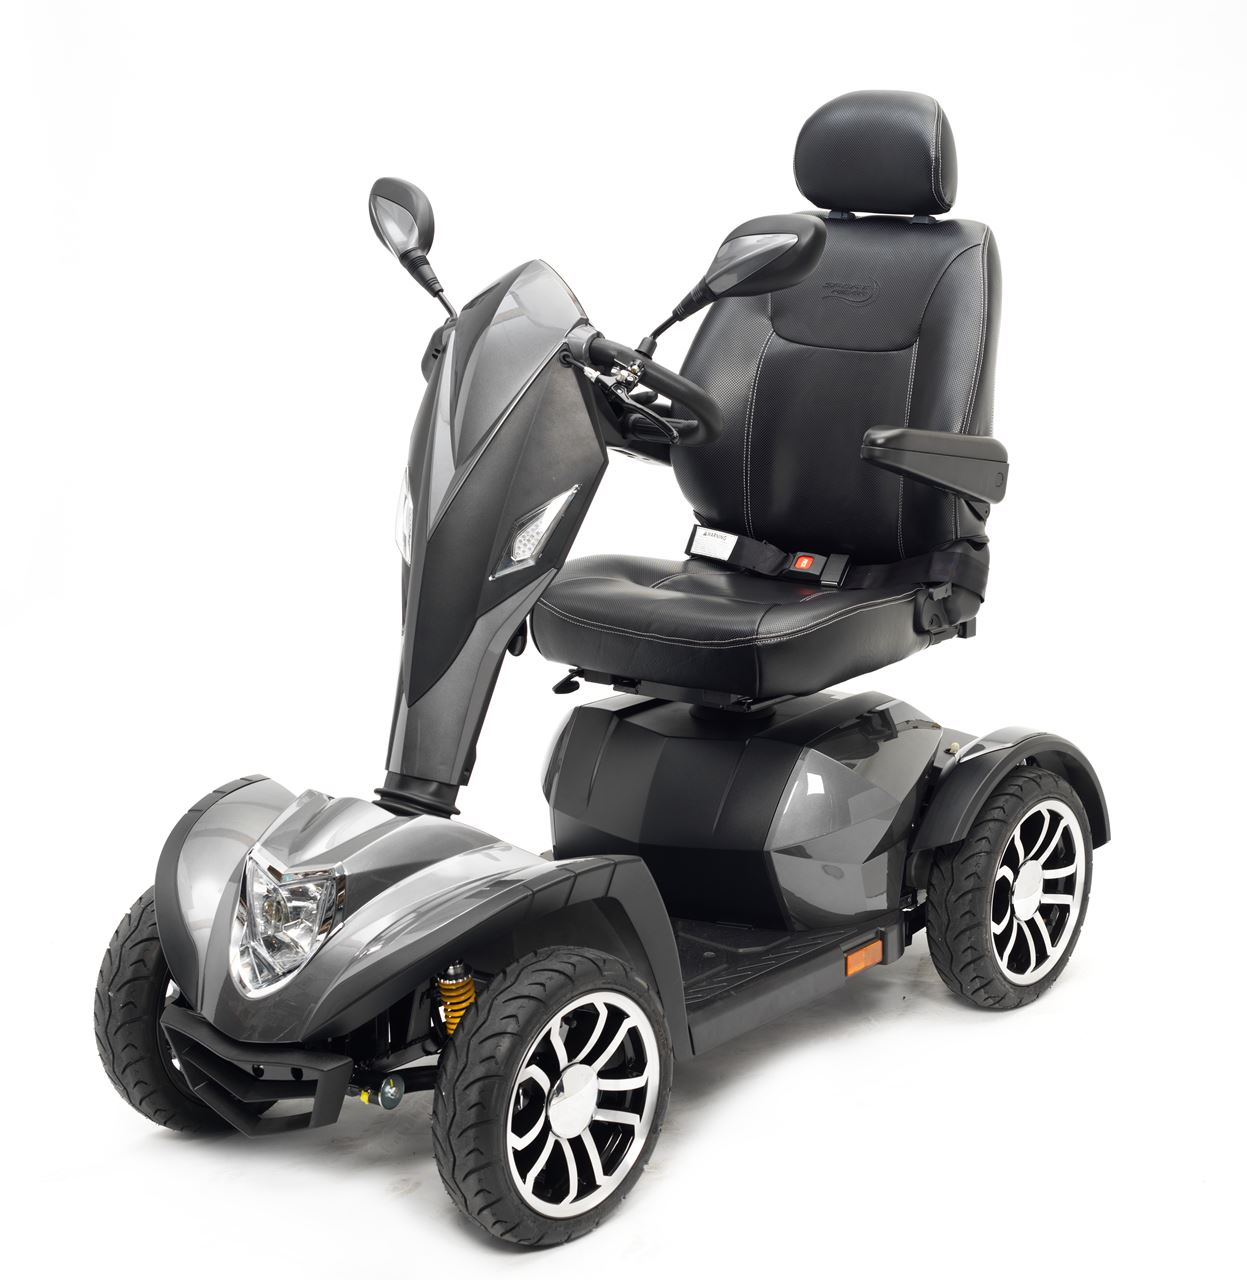 Picture for category Cobra Scooter